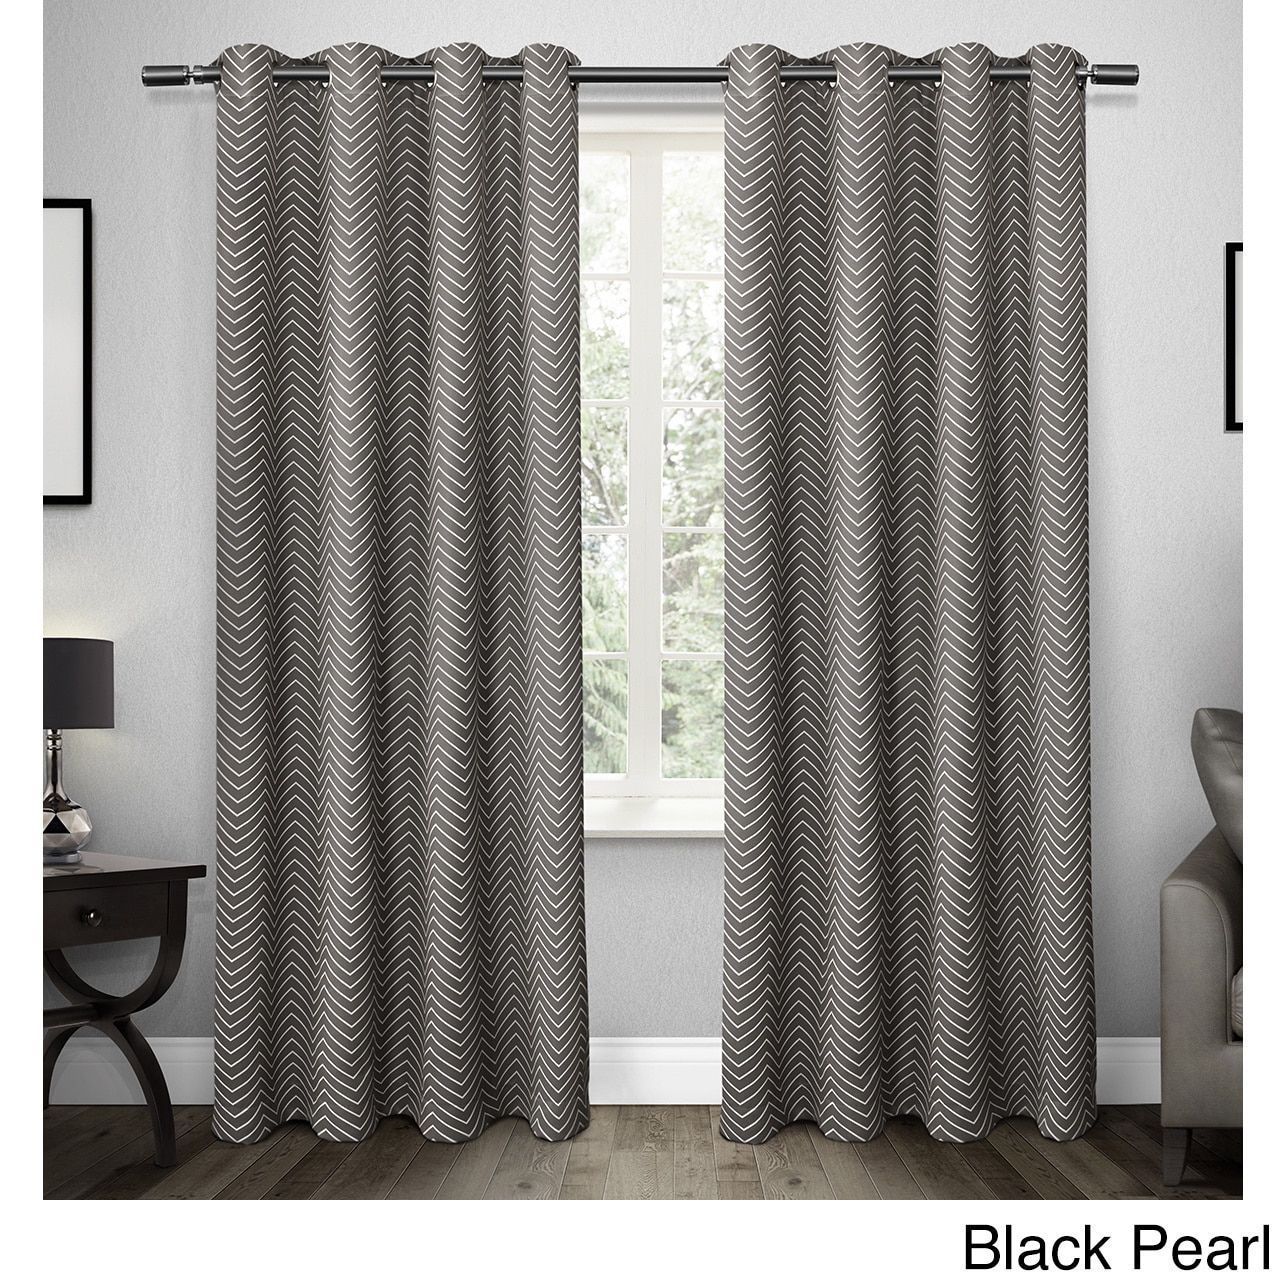 Ati Home Chevron Thermal Woven Blackout Grommet Top Curtain Regarding Twig Insulated Blackout Curtain Panel Pairs With Grommet Top (View 7 of 30)